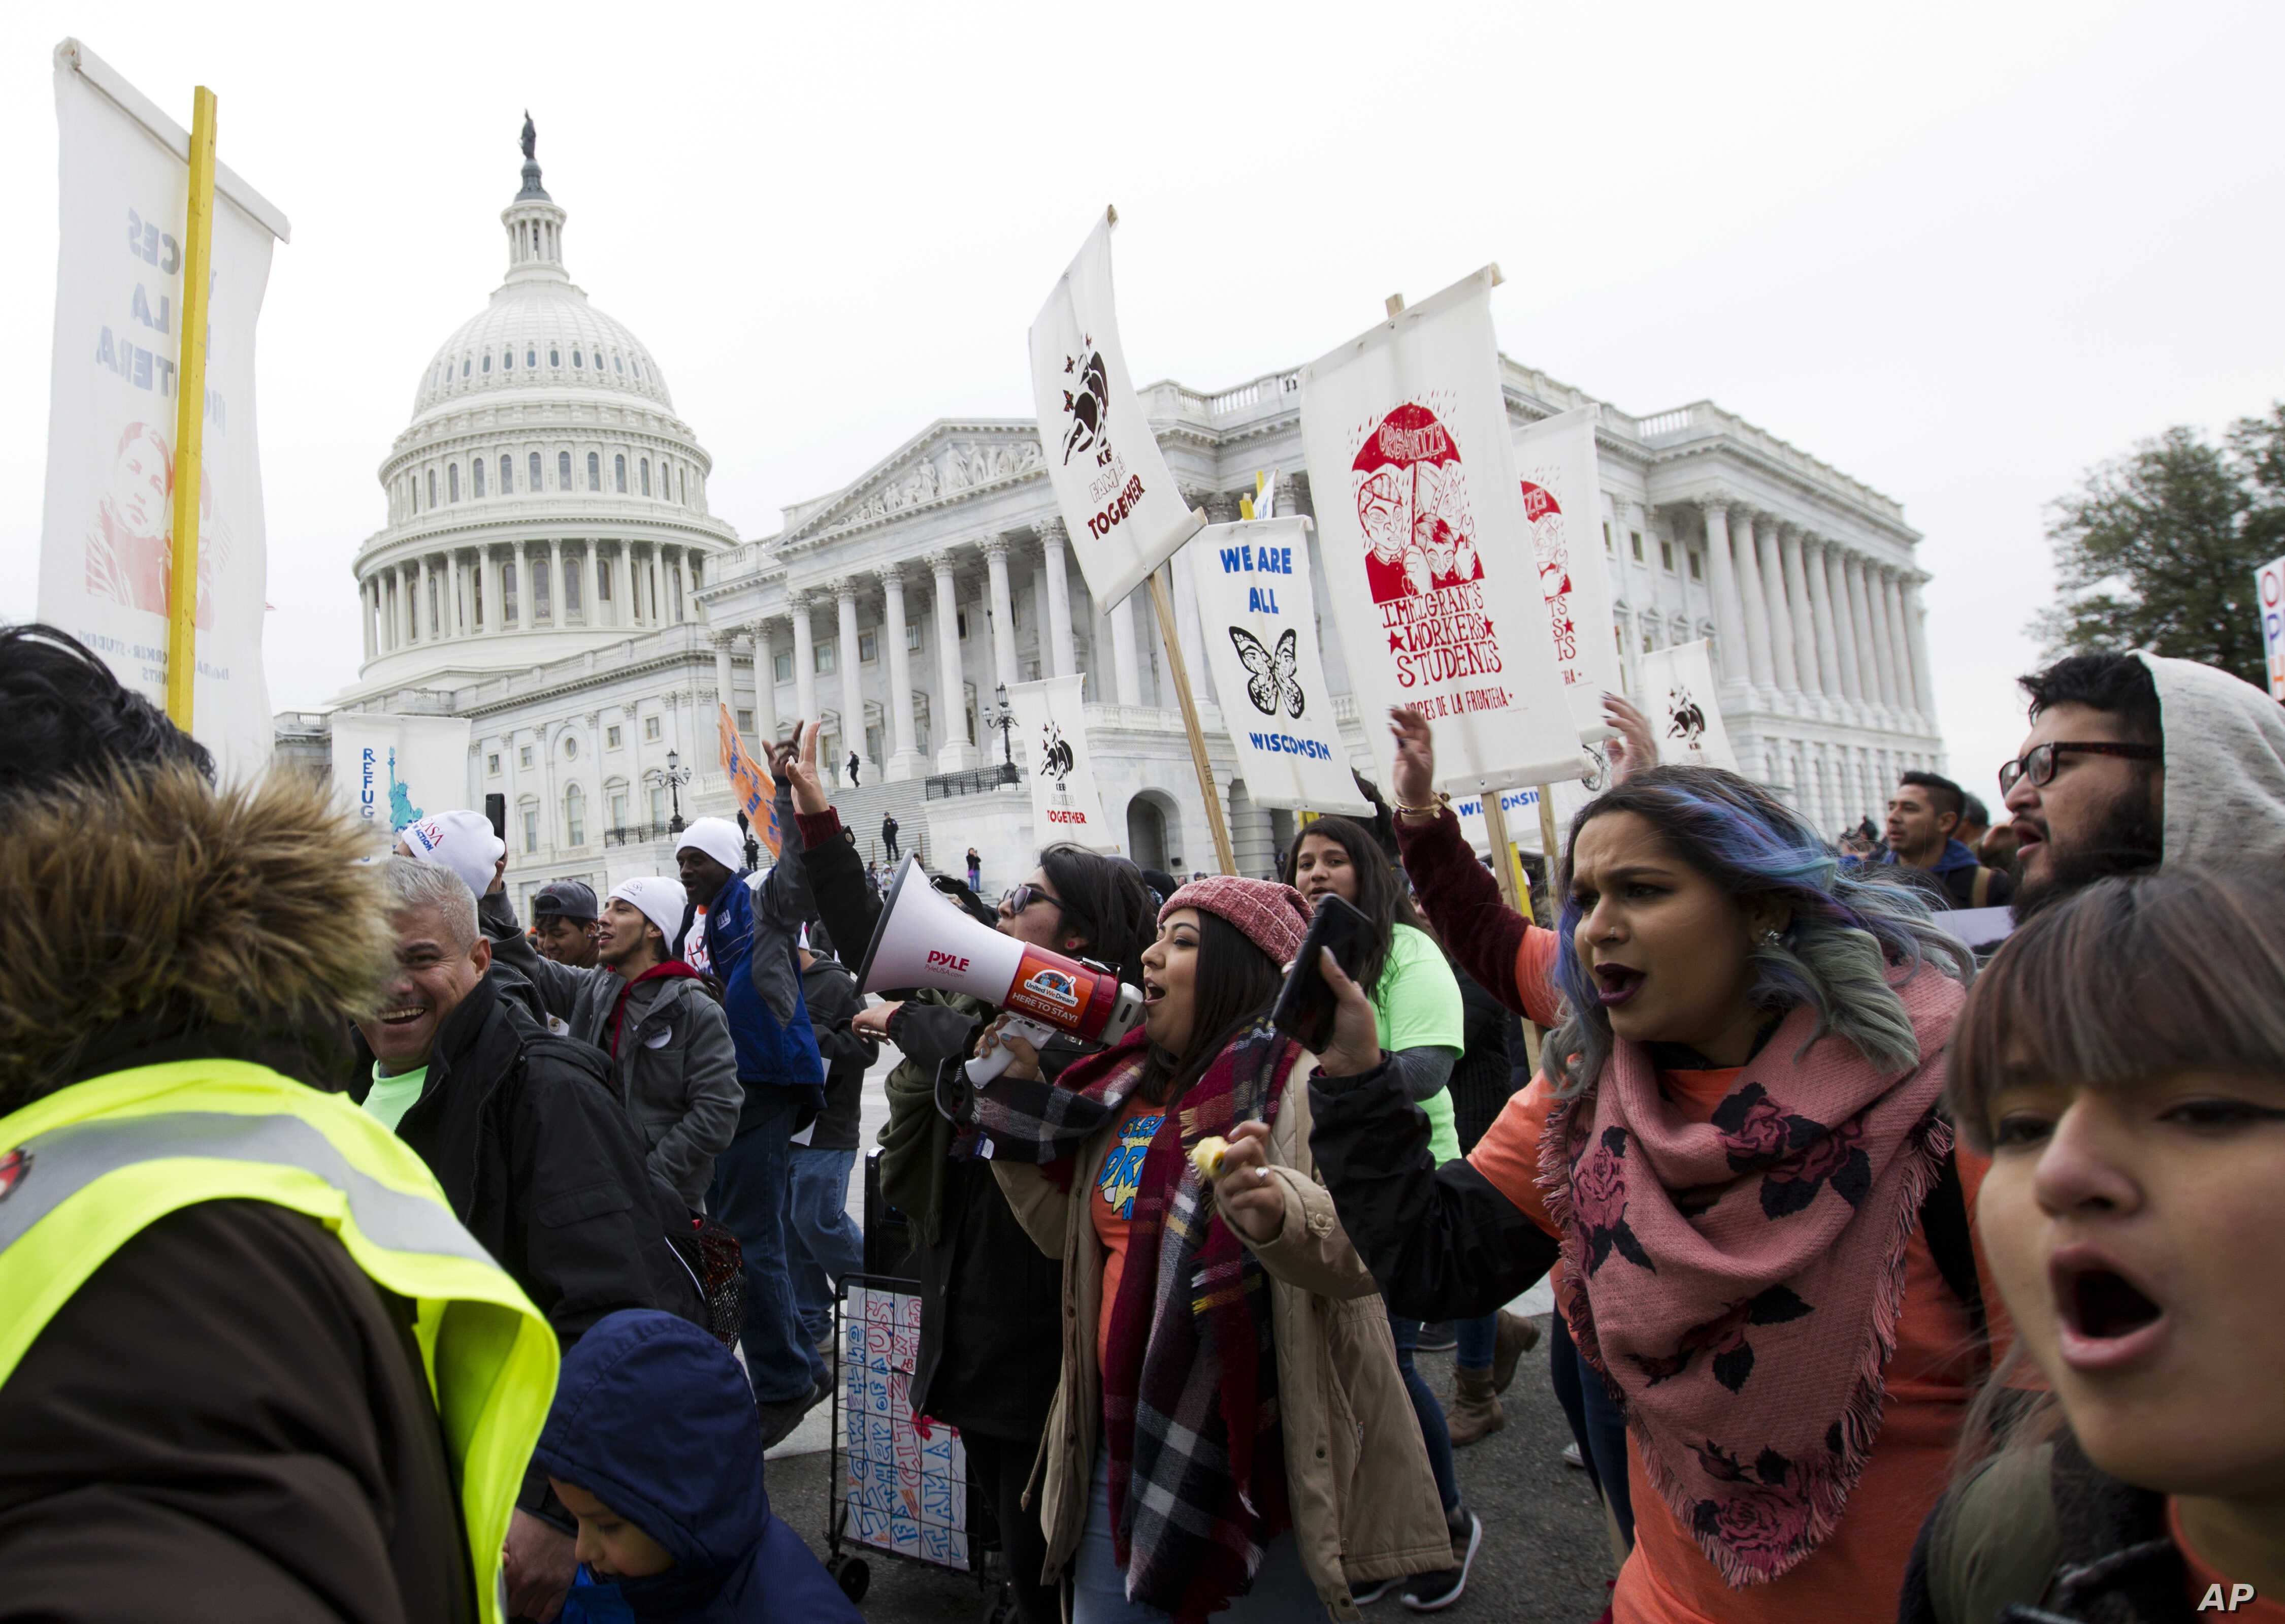 FILE - Demonstrators march during an immigration rally in support of the Deferred Action for Childhood Arrivals (DACA), on Capitol Hill in Washington, Dec. 6, 2017.